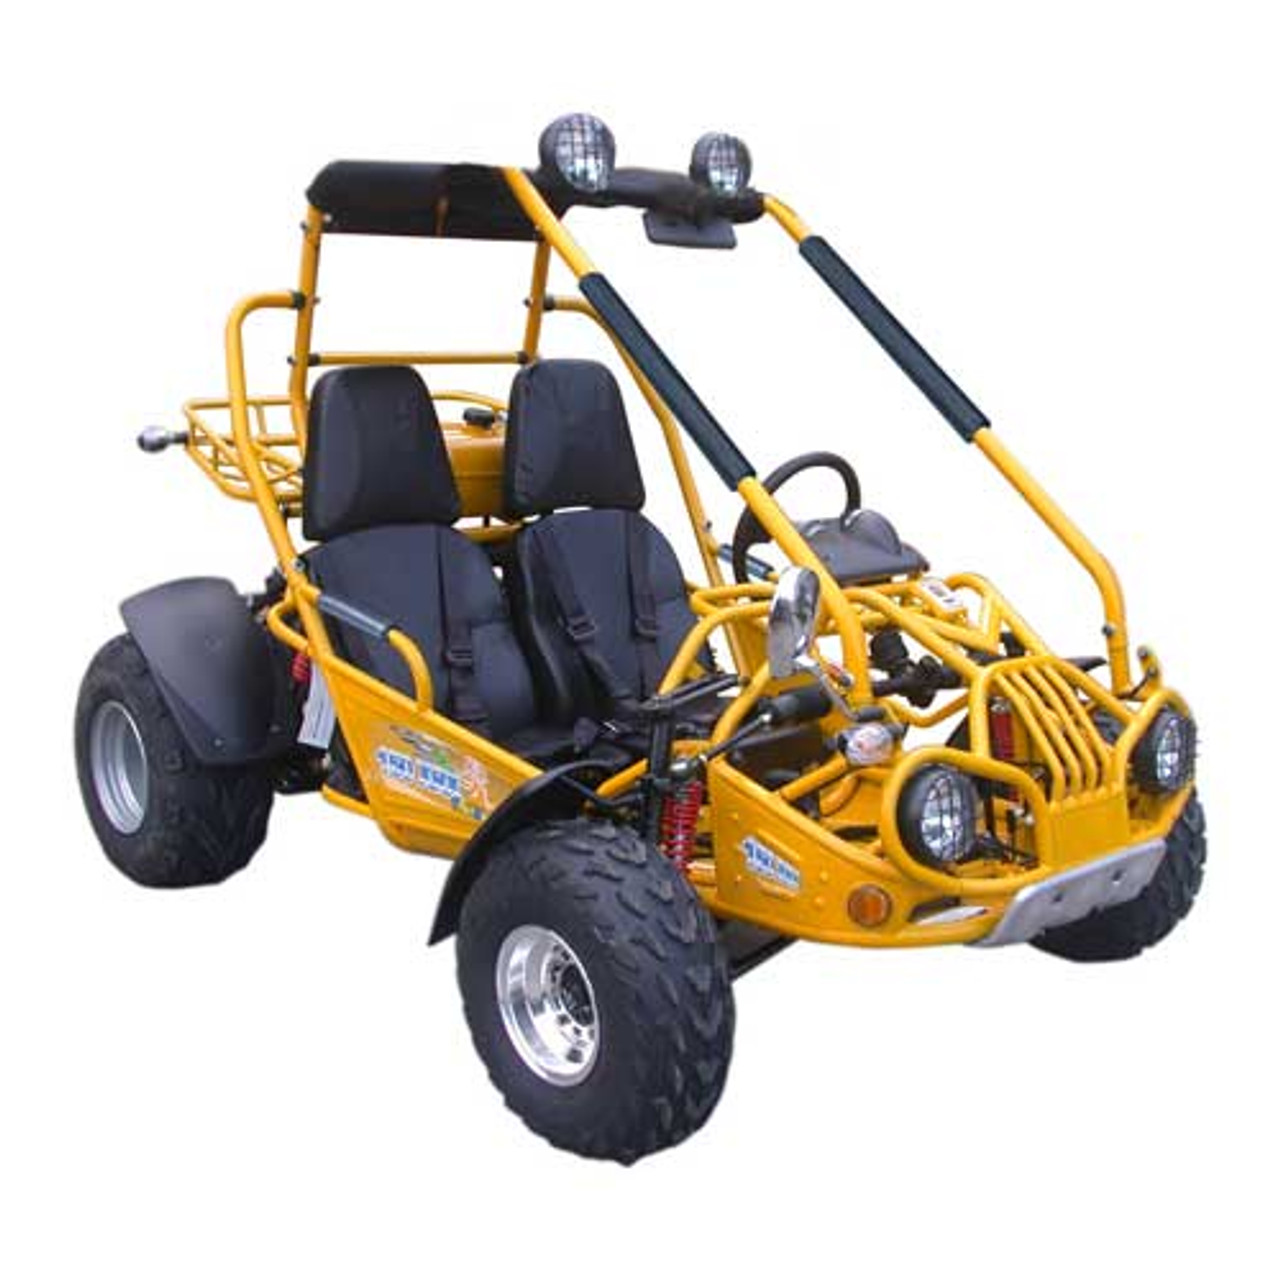 TrailMaster 150 XRX Go-Kart - Yellow